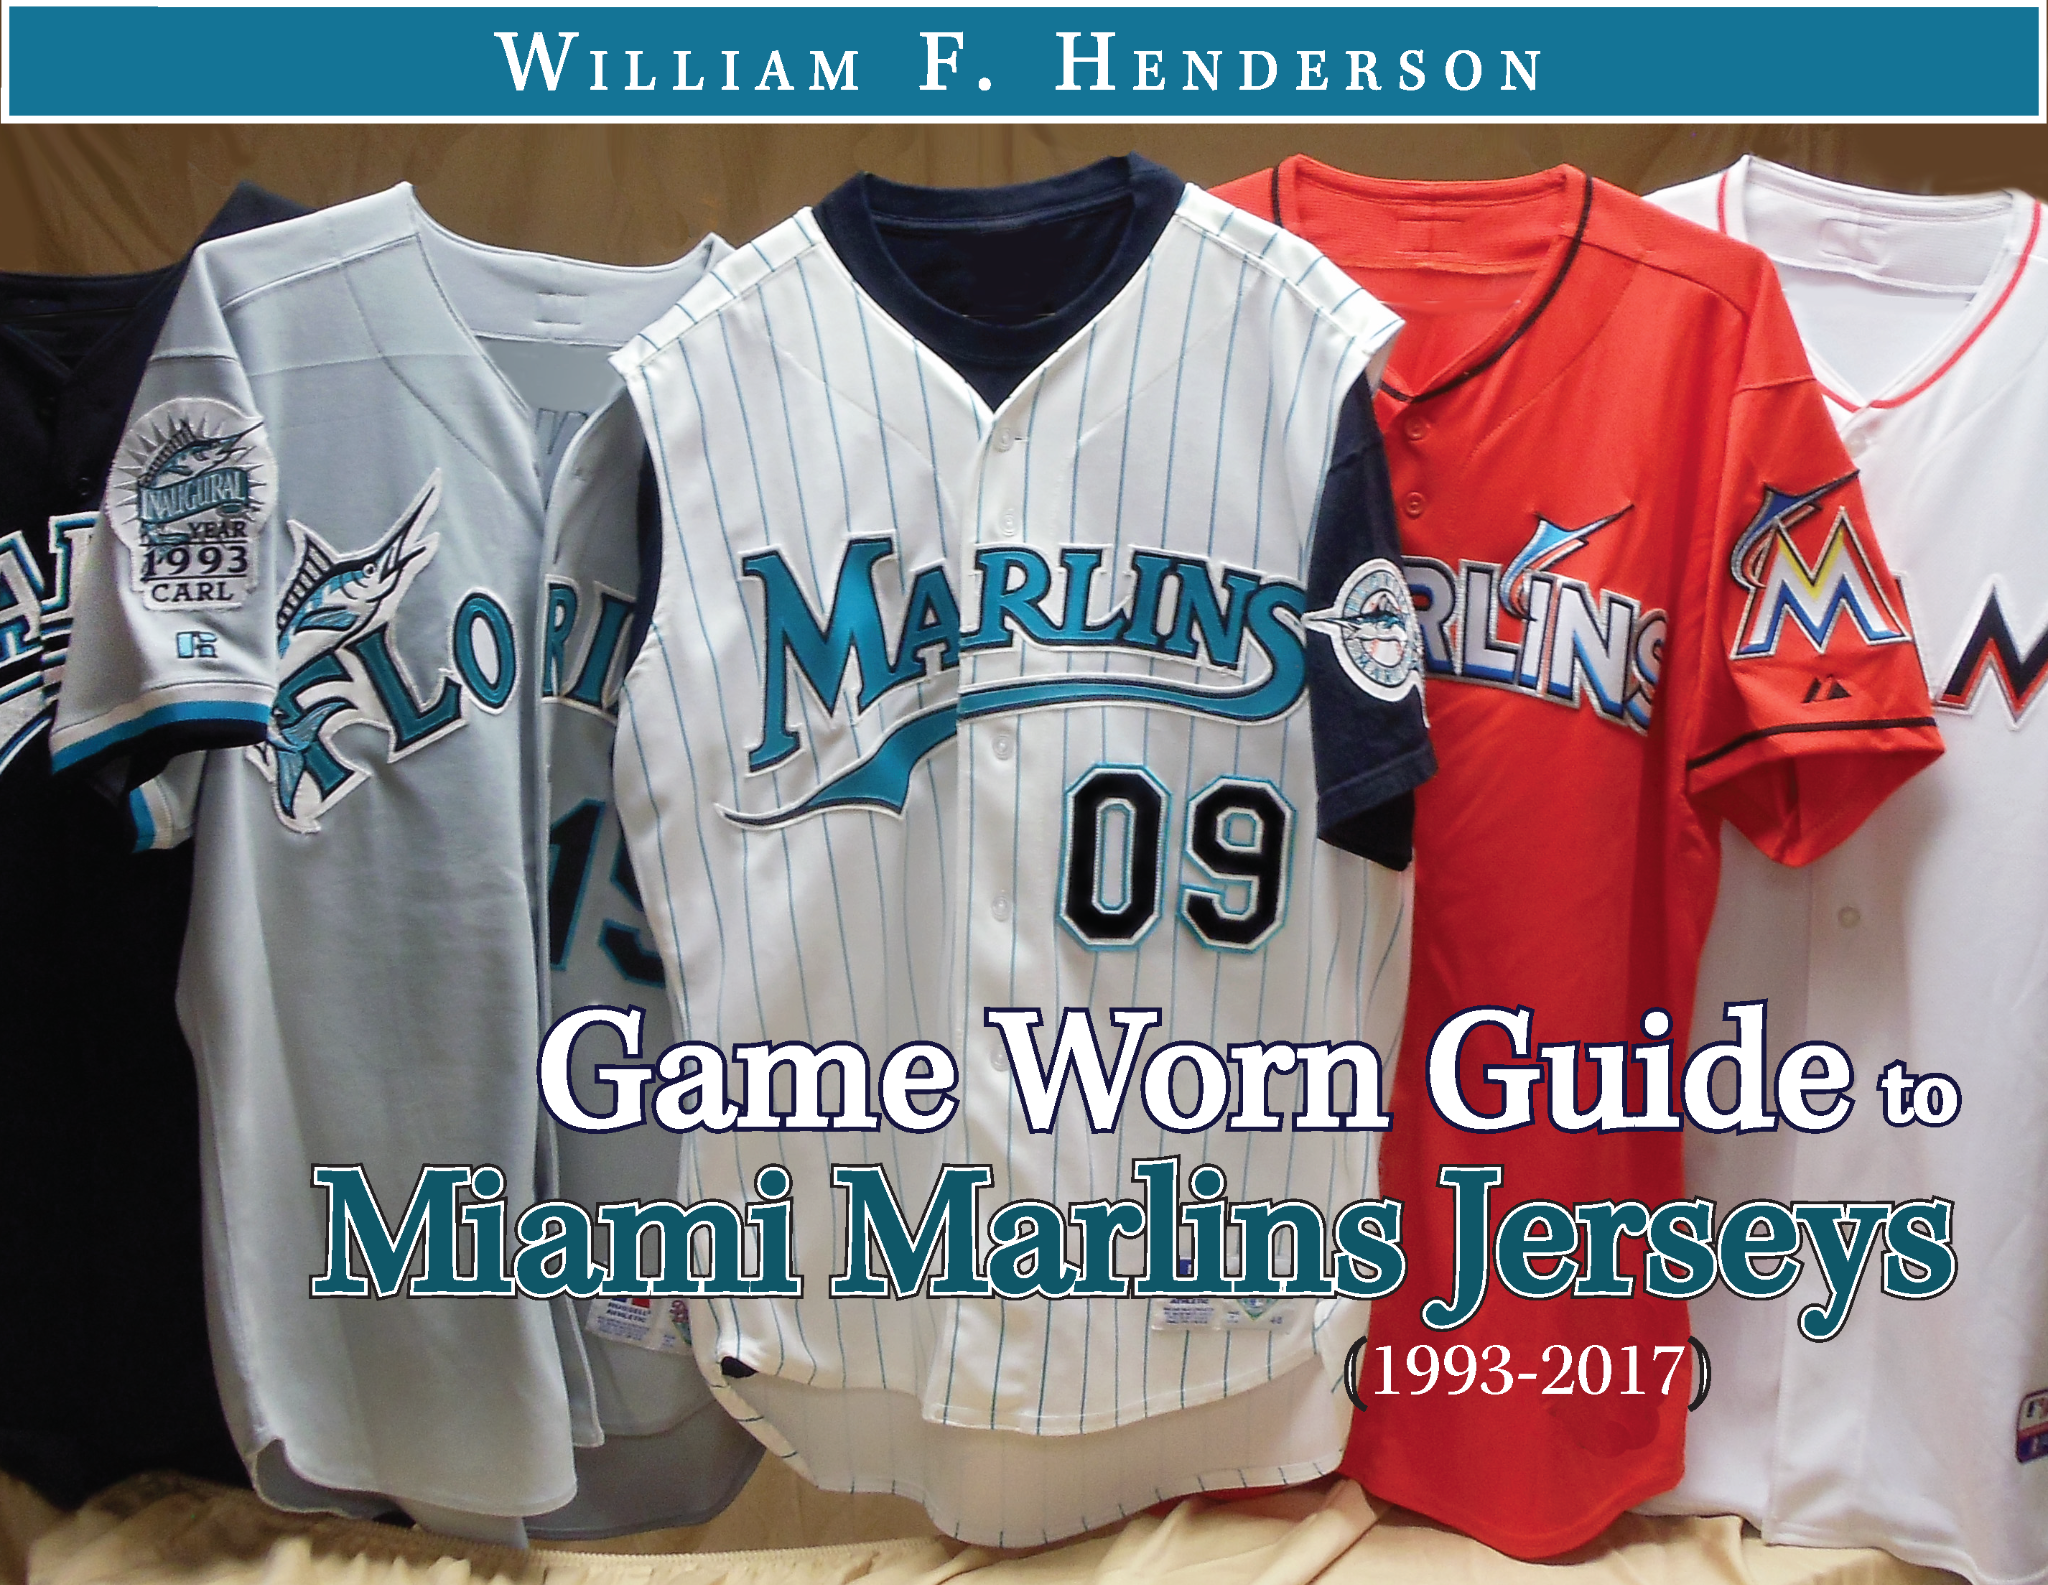 Game Worn Guide to Miami Marlins Jerseys (1993-2017)